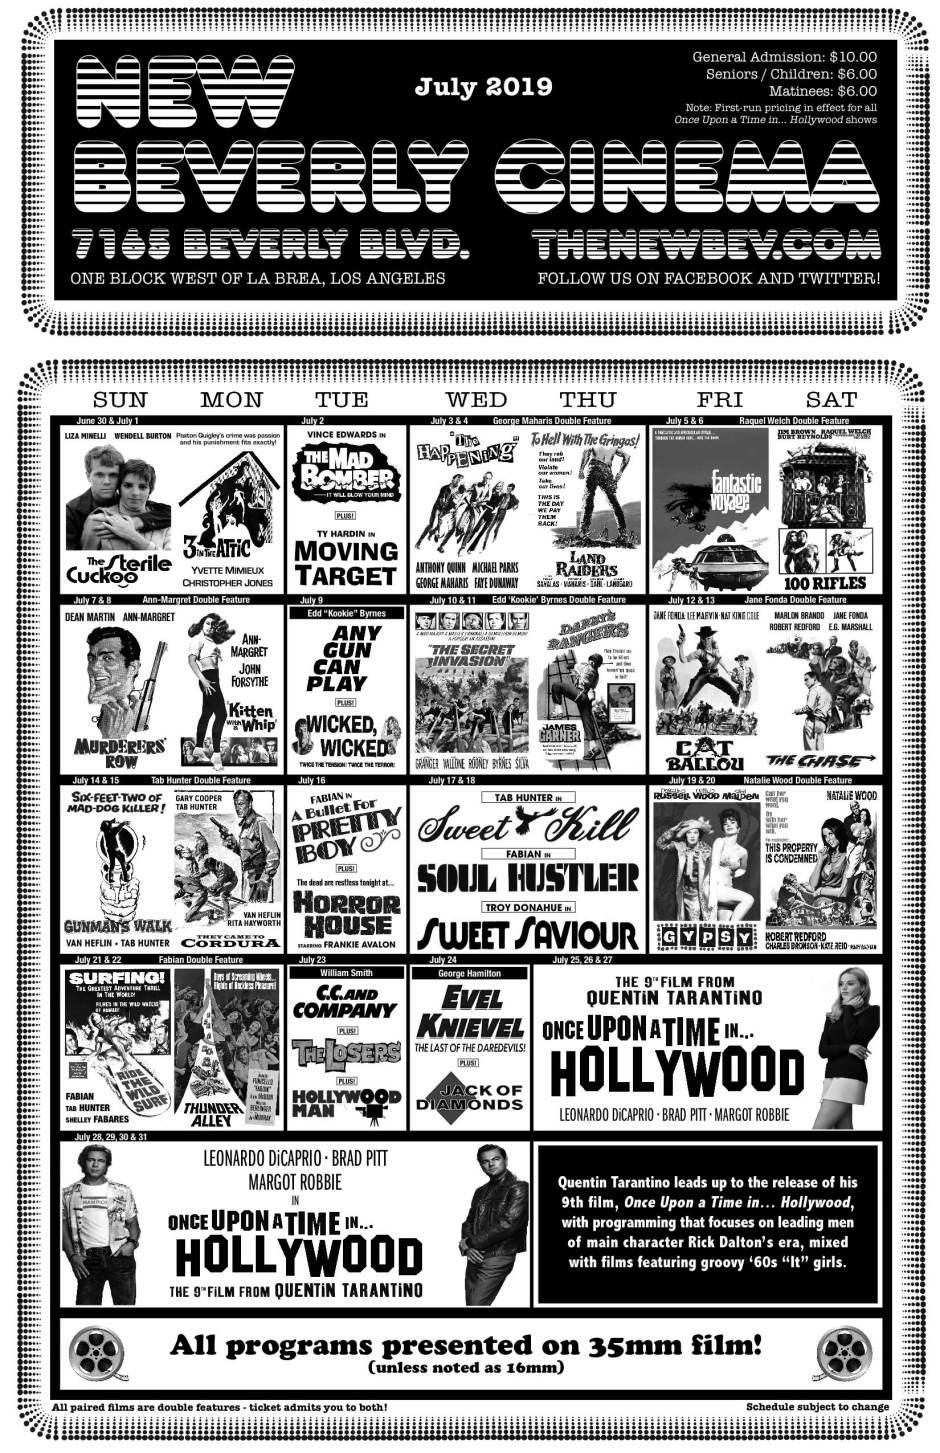 Once Upon A Time In Hollywood - The New Beverly Cinema calendar July 2019July-2019